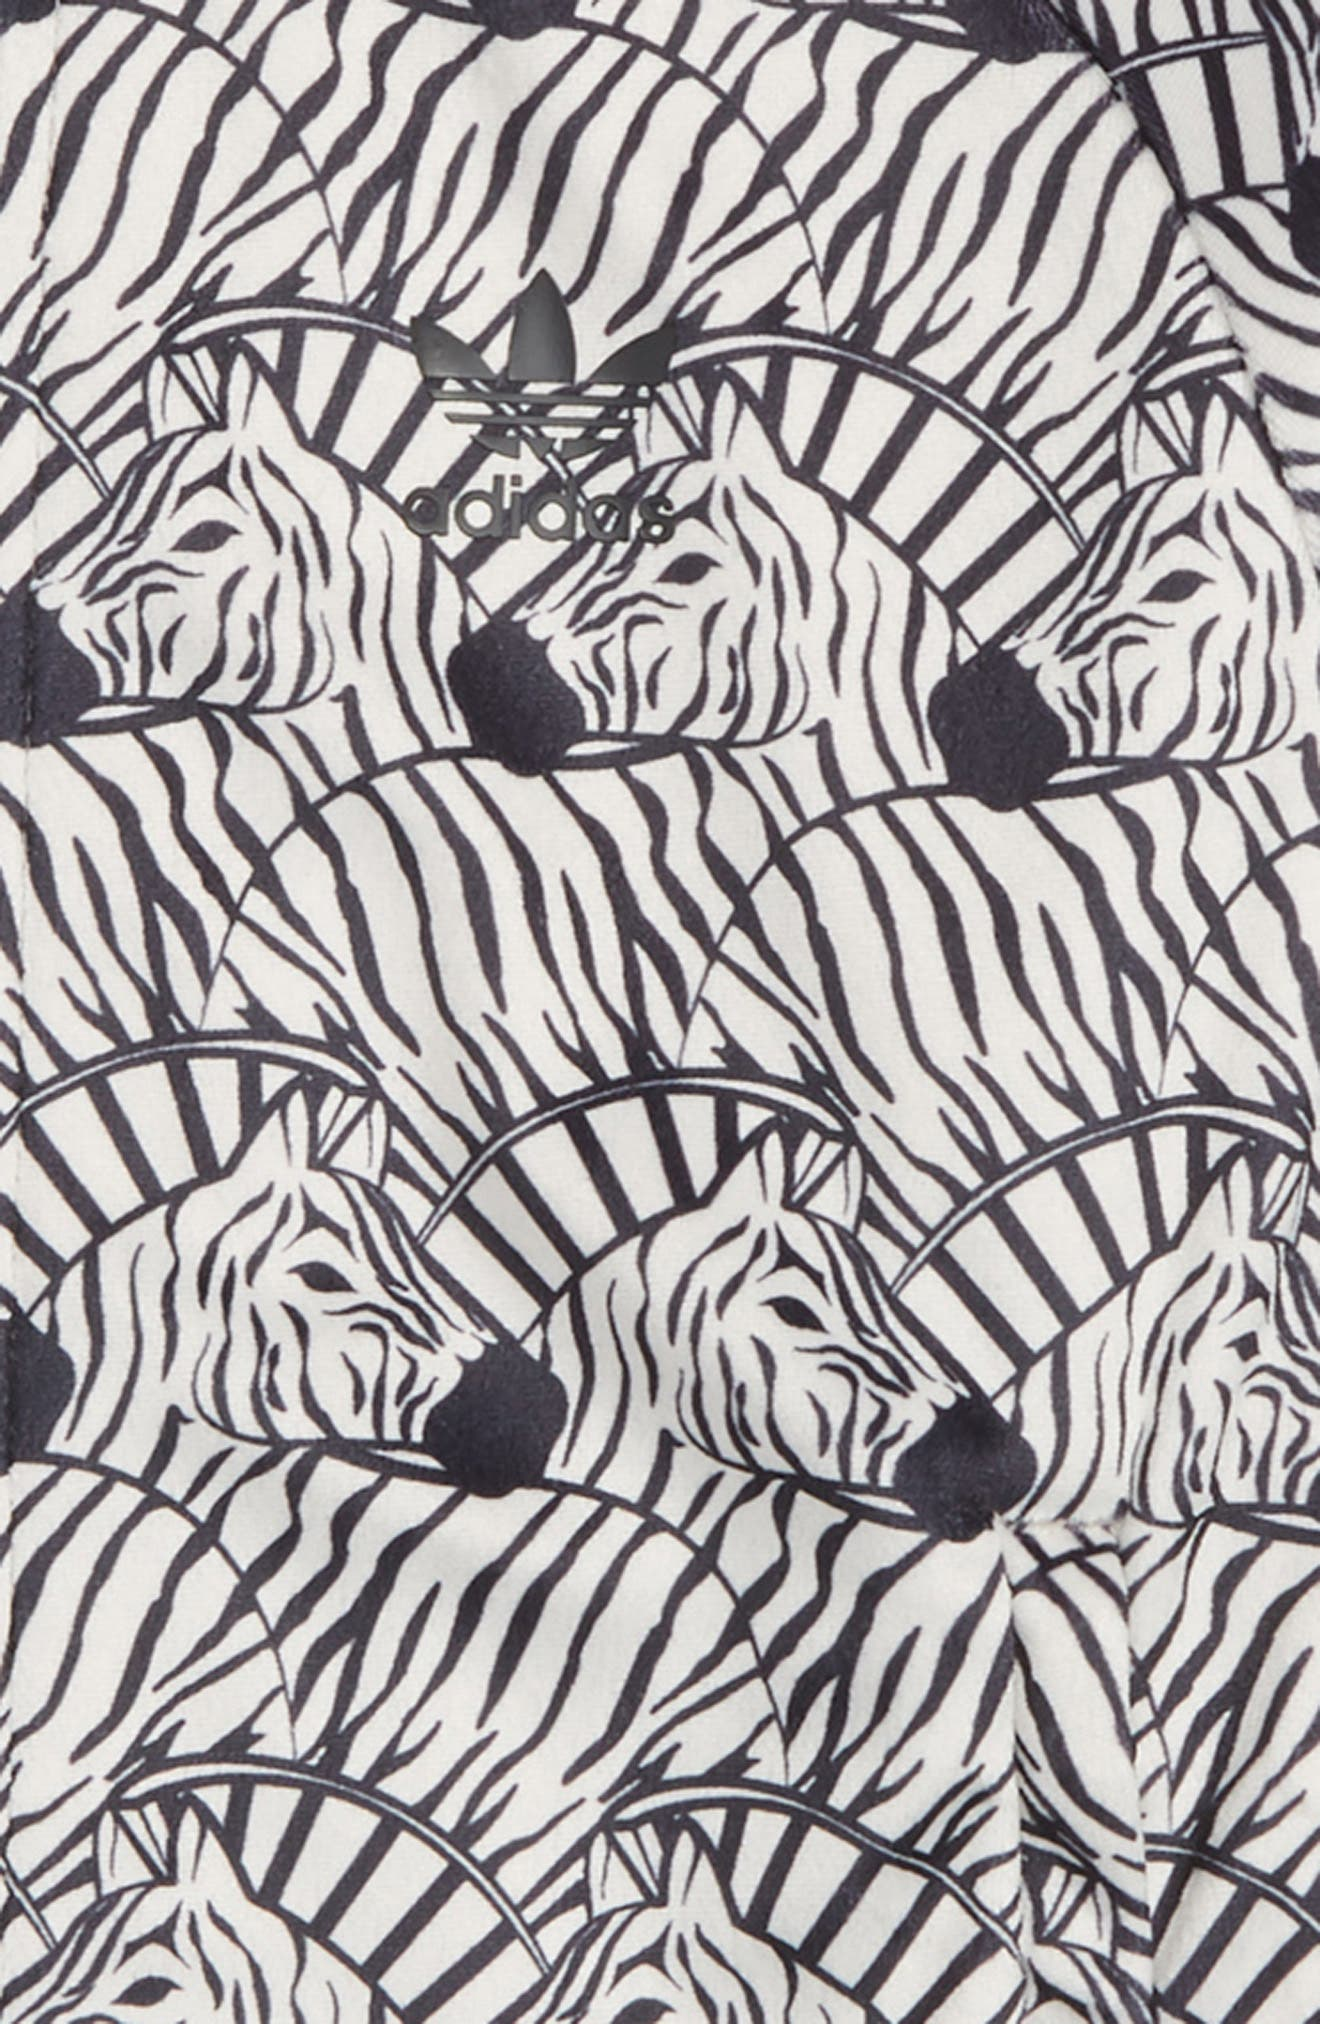 J Zebra Track Jacket,                             Alternate thumbnail 2, color,                             200